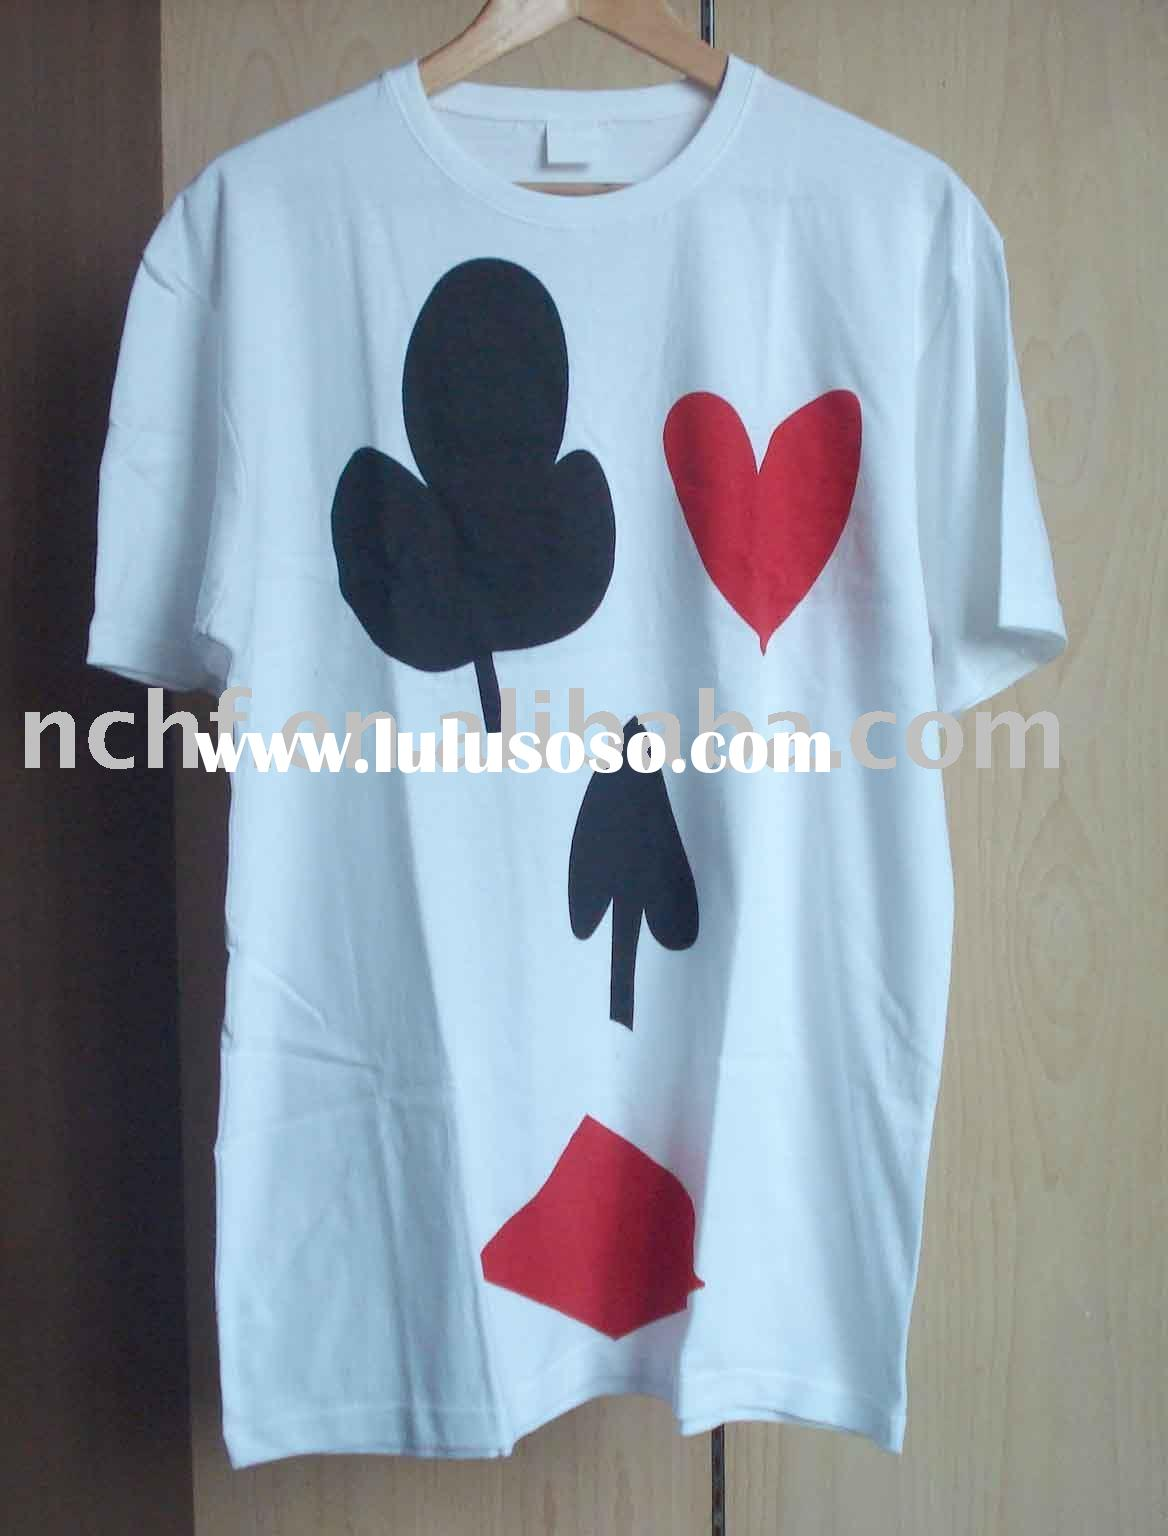 Plus Size Poker Print T-shirt For Man